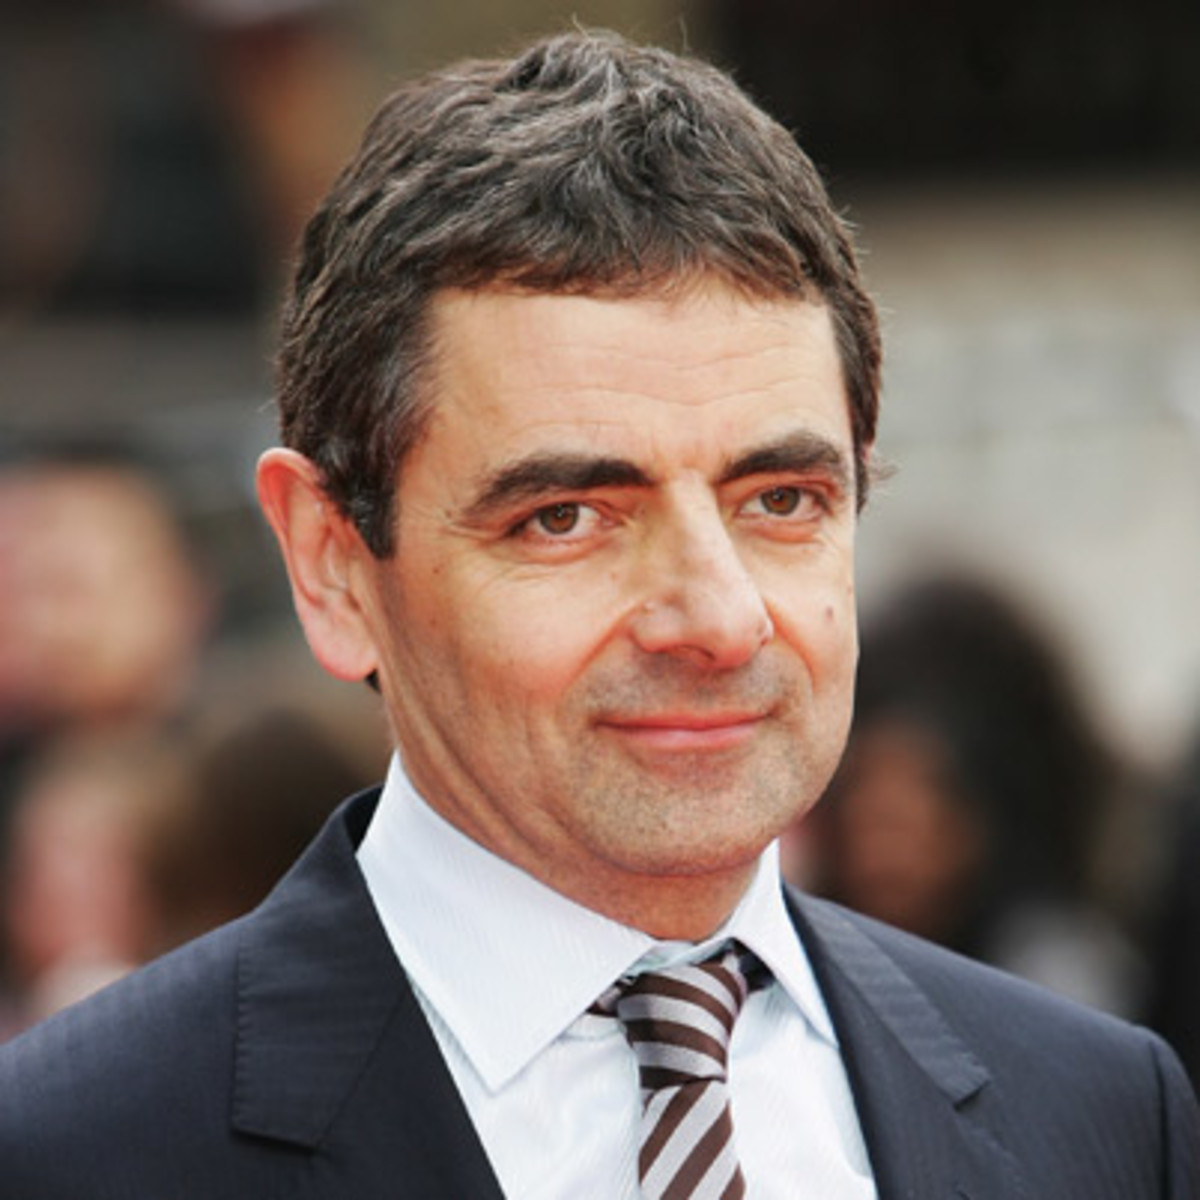 Rowan Atkinson (born 1955) nude photos 2019